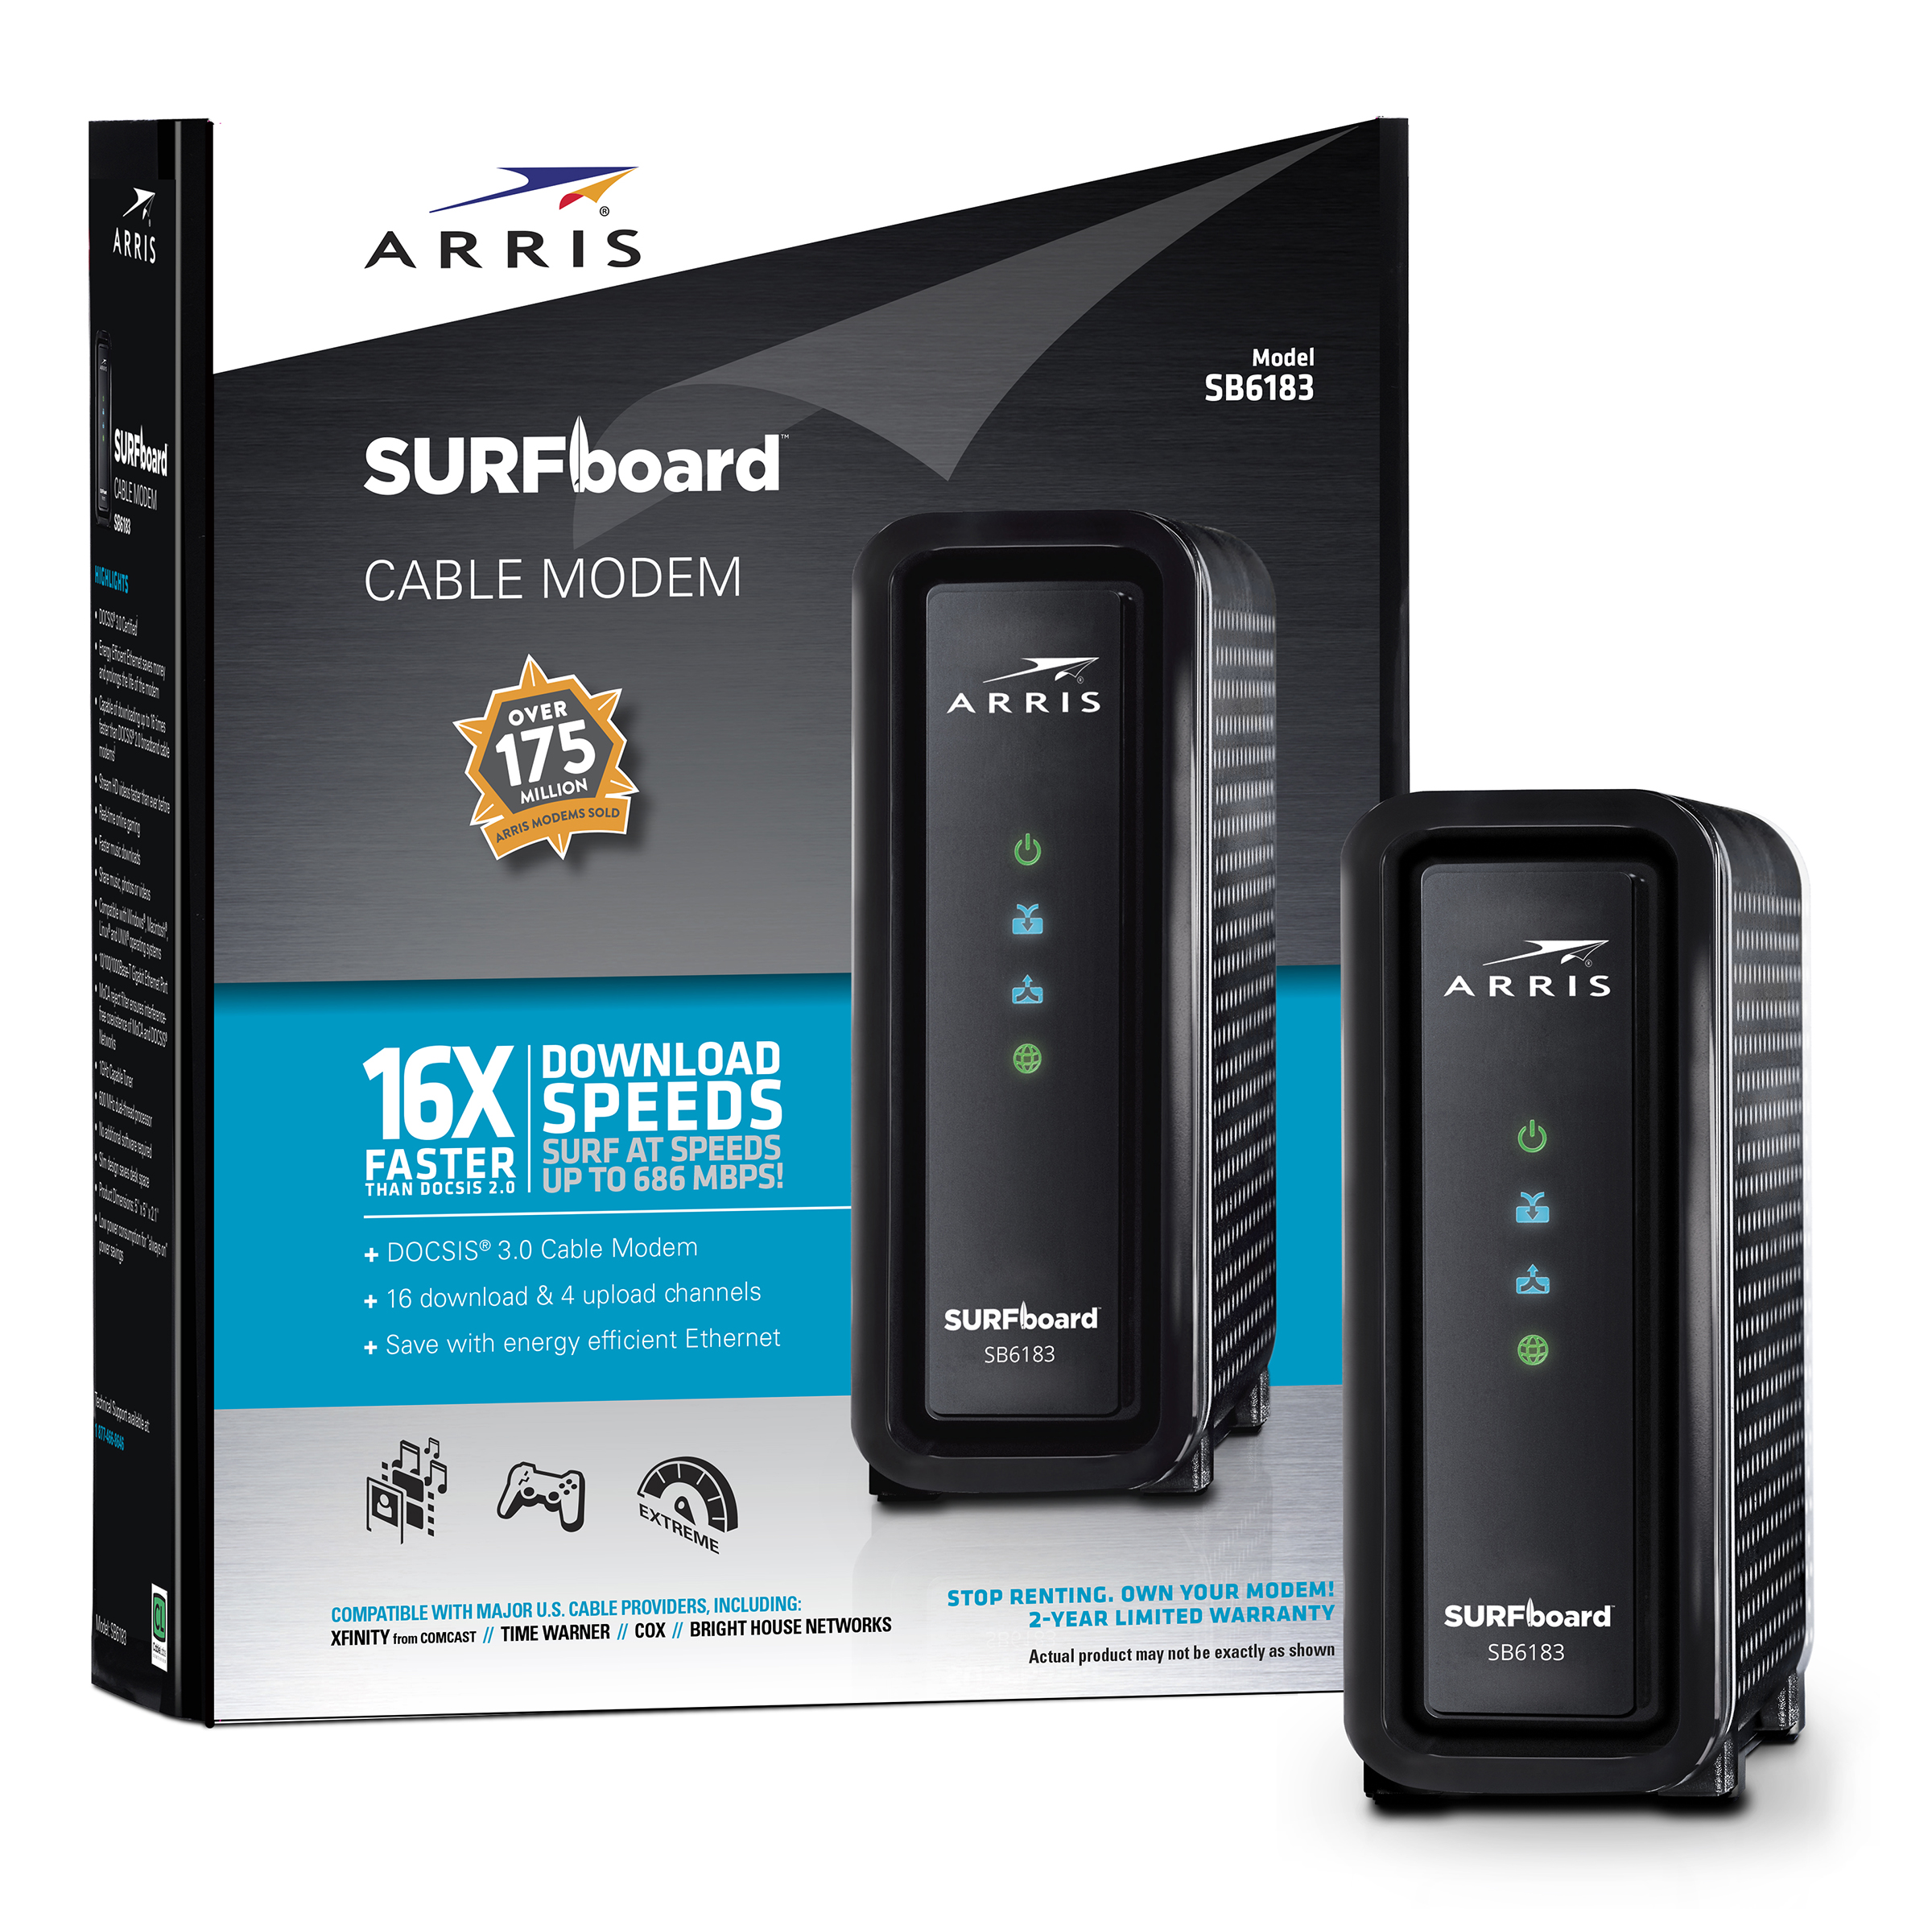 ARRIS SURFboard SB6183 DOCSIS 3.0 Cable Modem - colors may vary ...